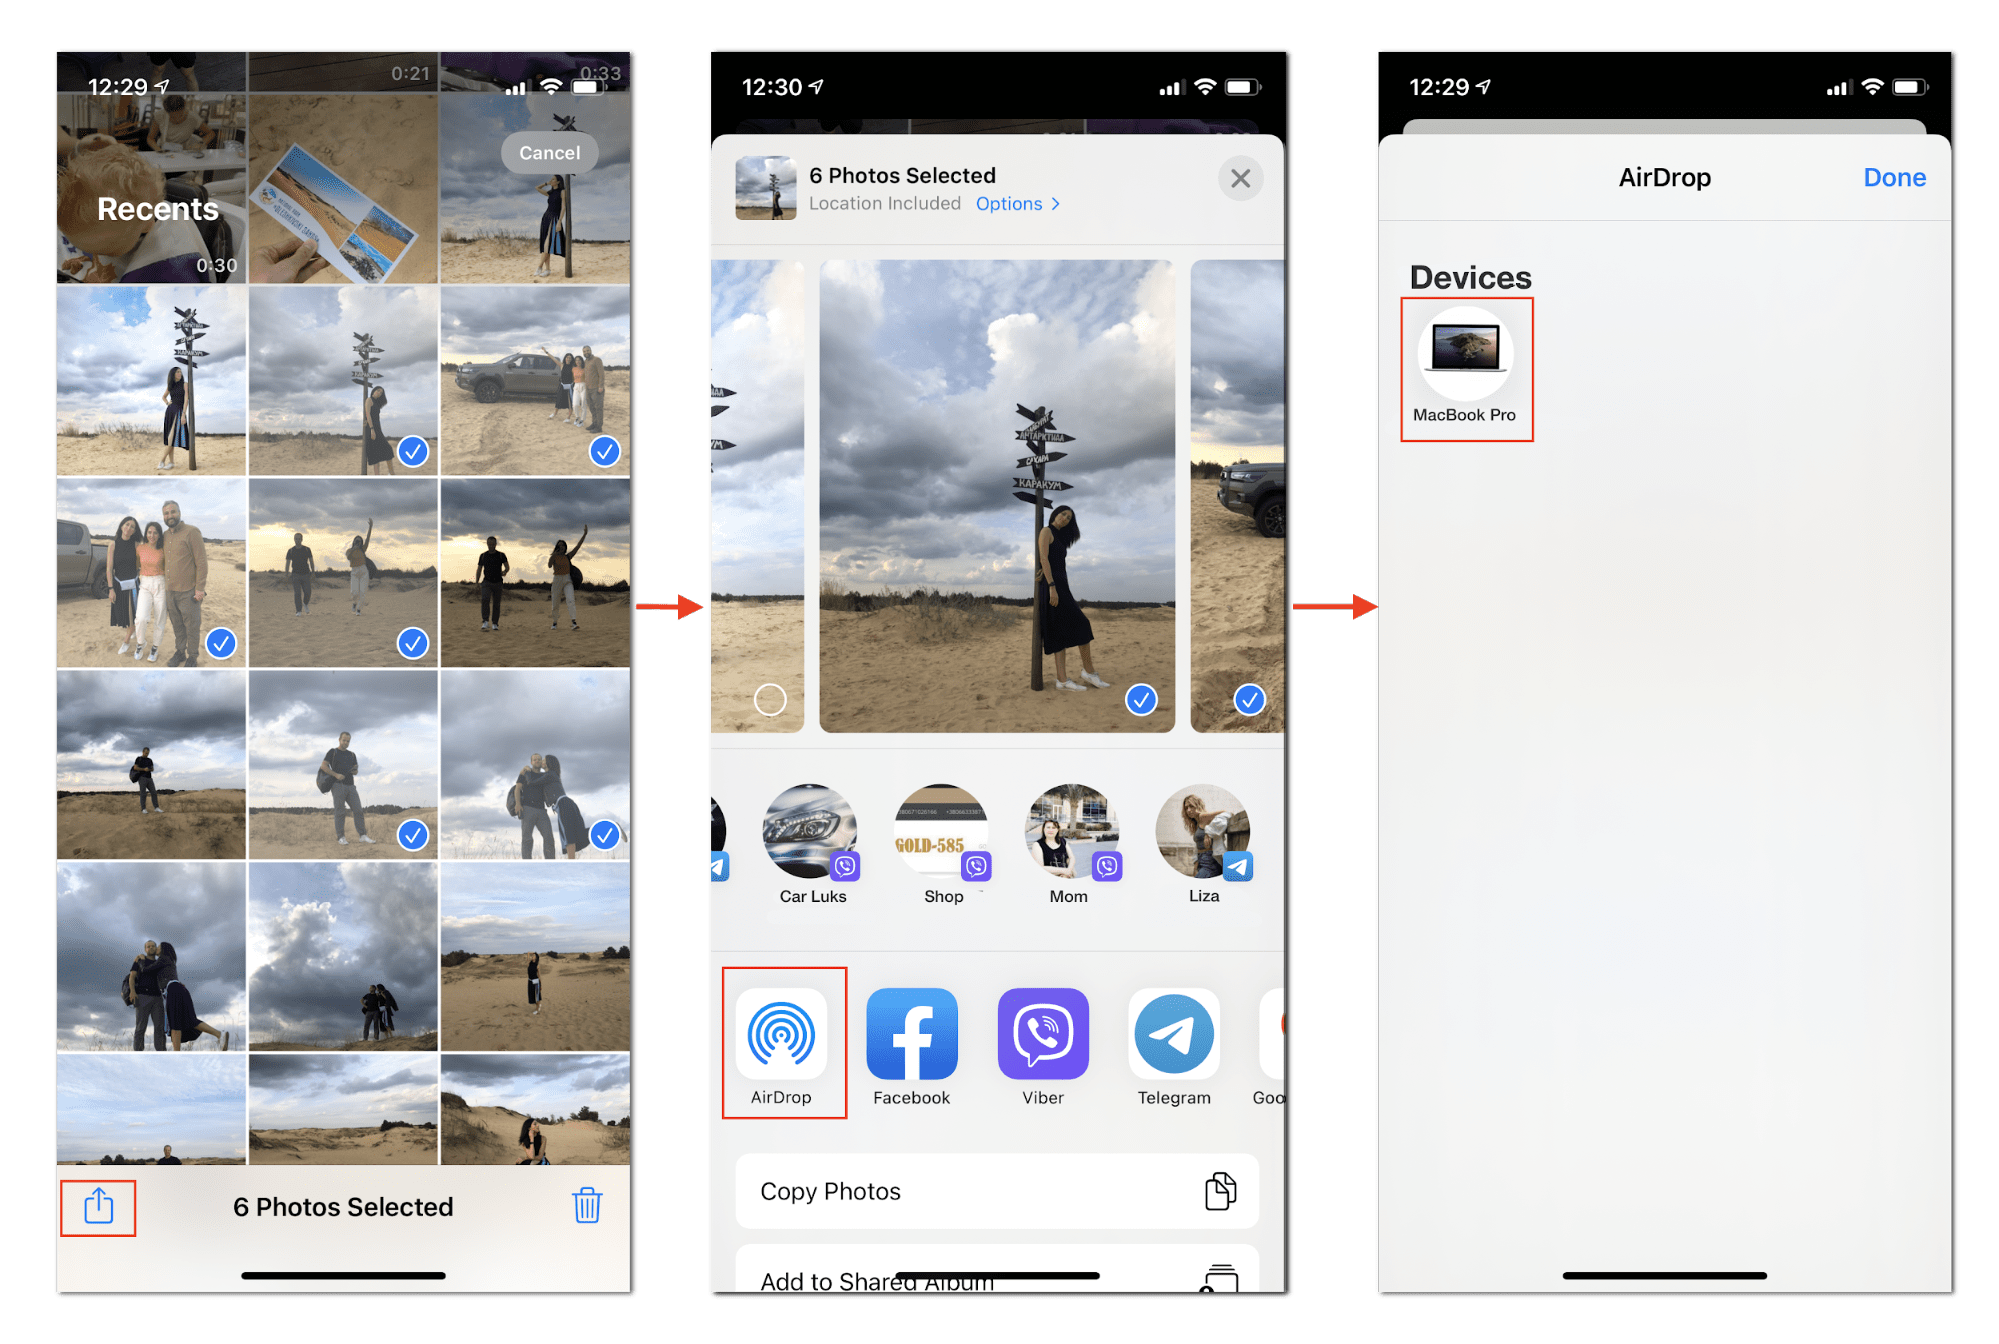 iPhone screens showing how to share photos via AirDrop